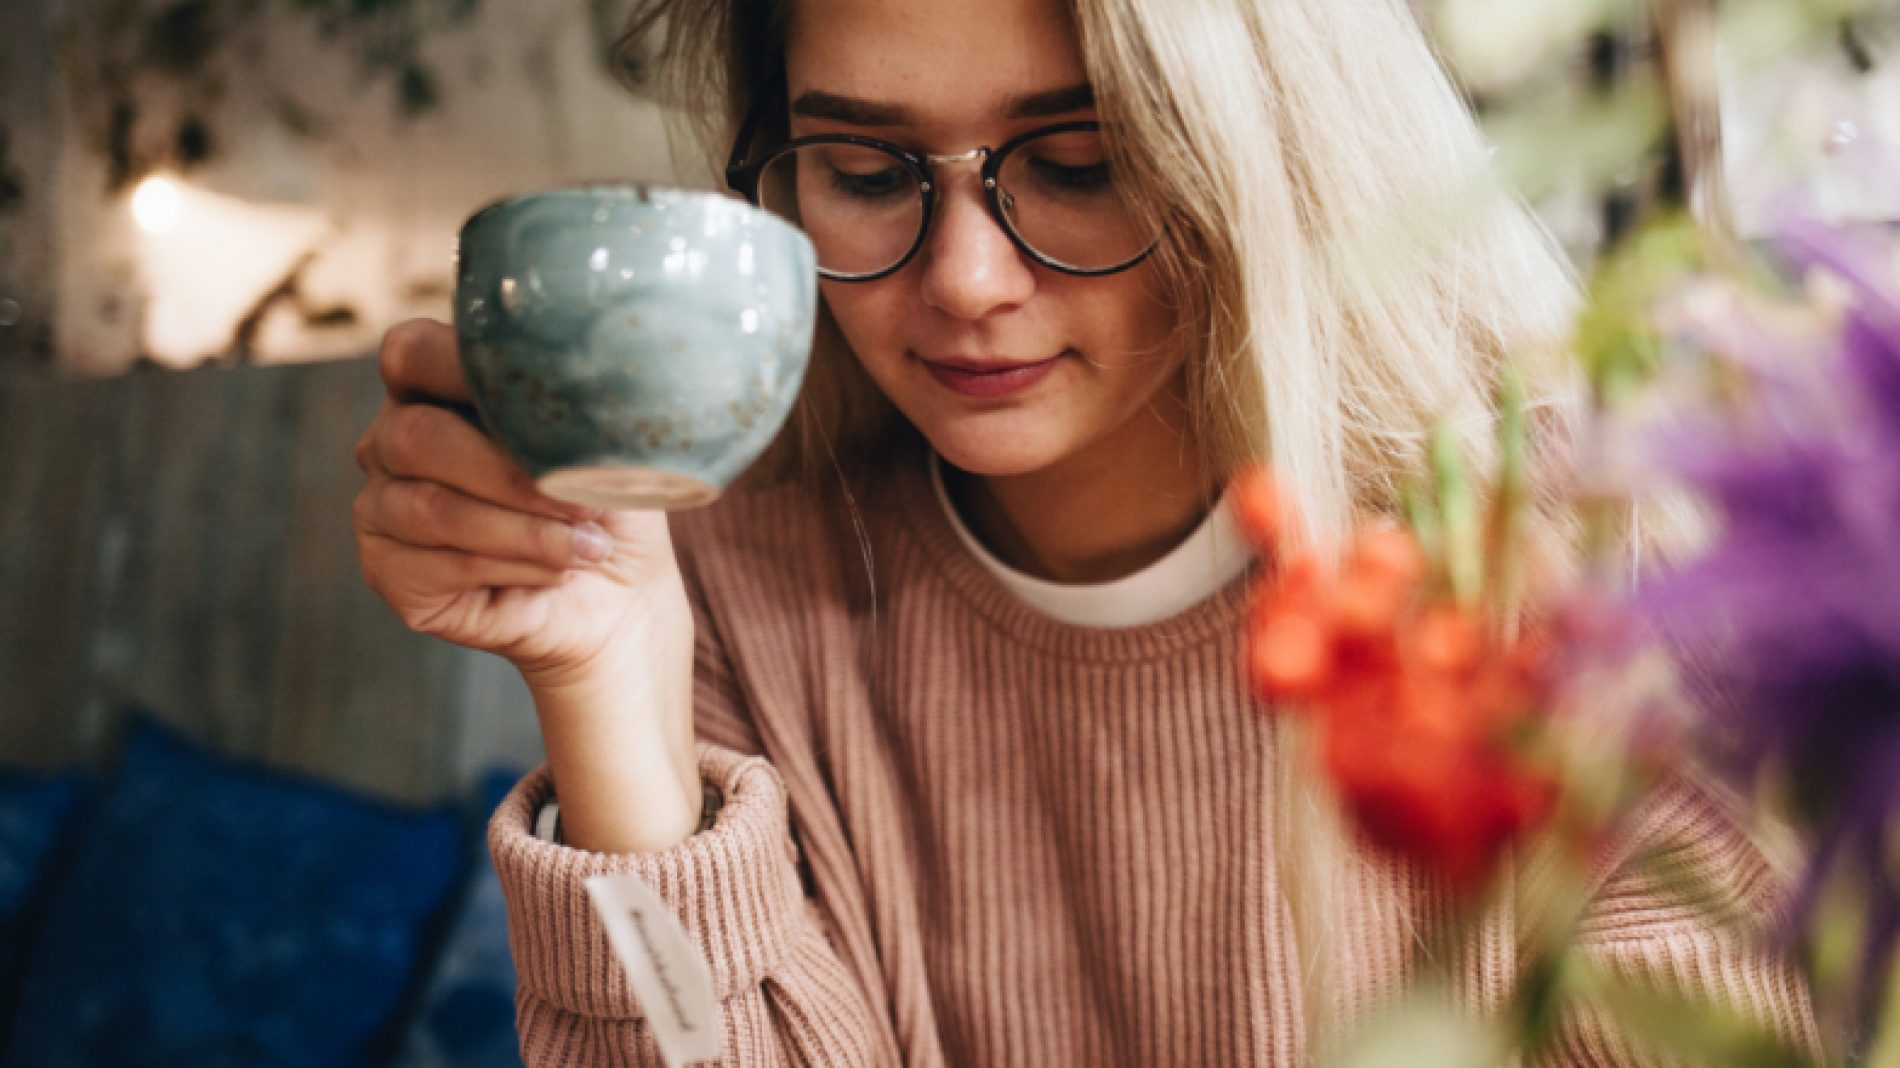 Young-person-with-glasses-and-tea-Ob6Eyr